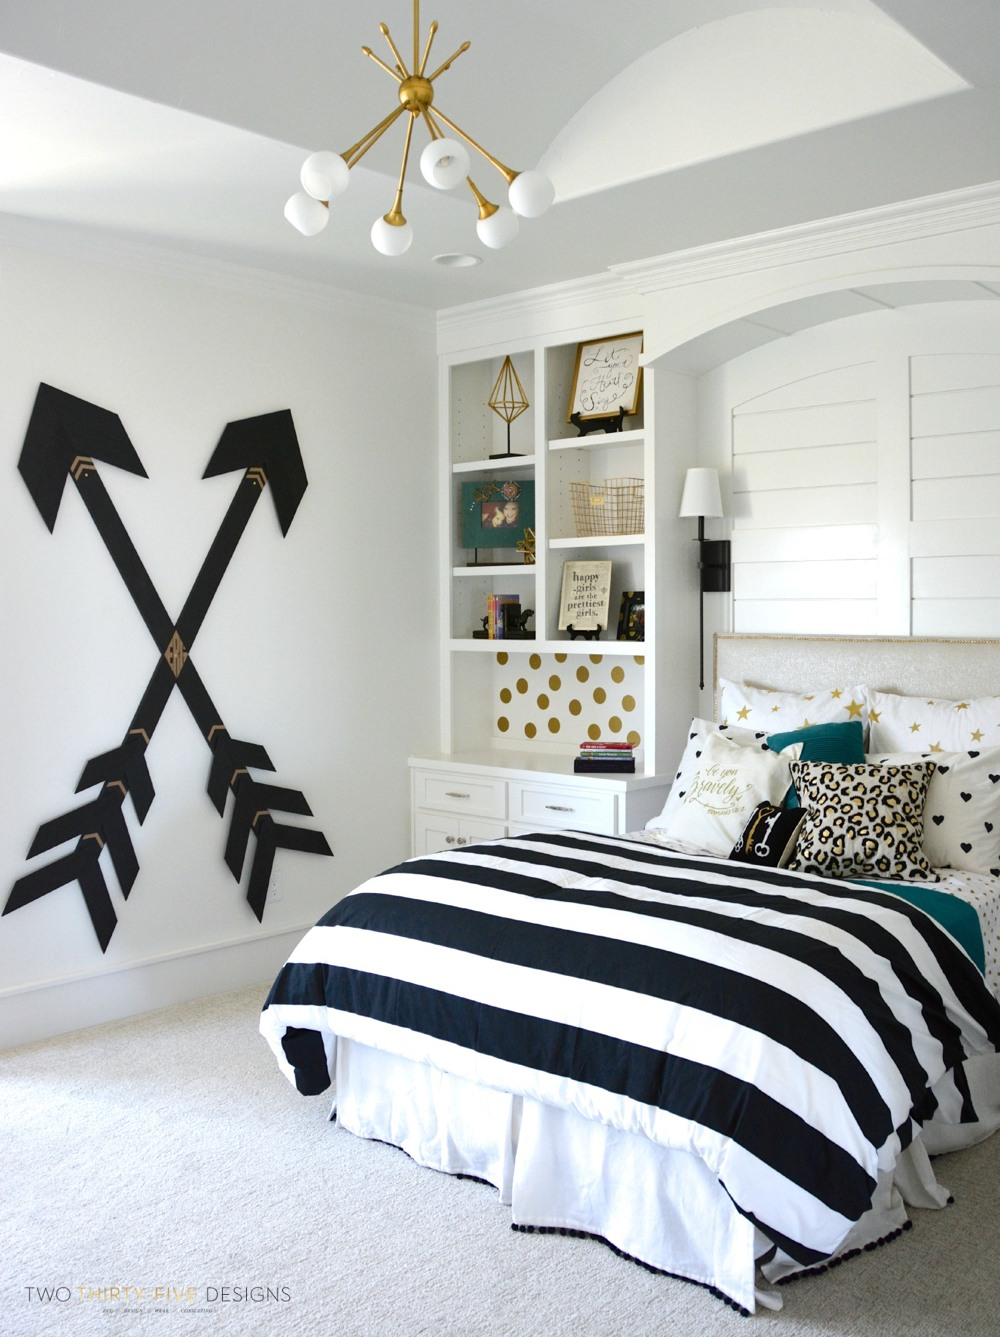 Superb Pottery Barn Teen Girl Bedroom With Wooden Wall Arrows